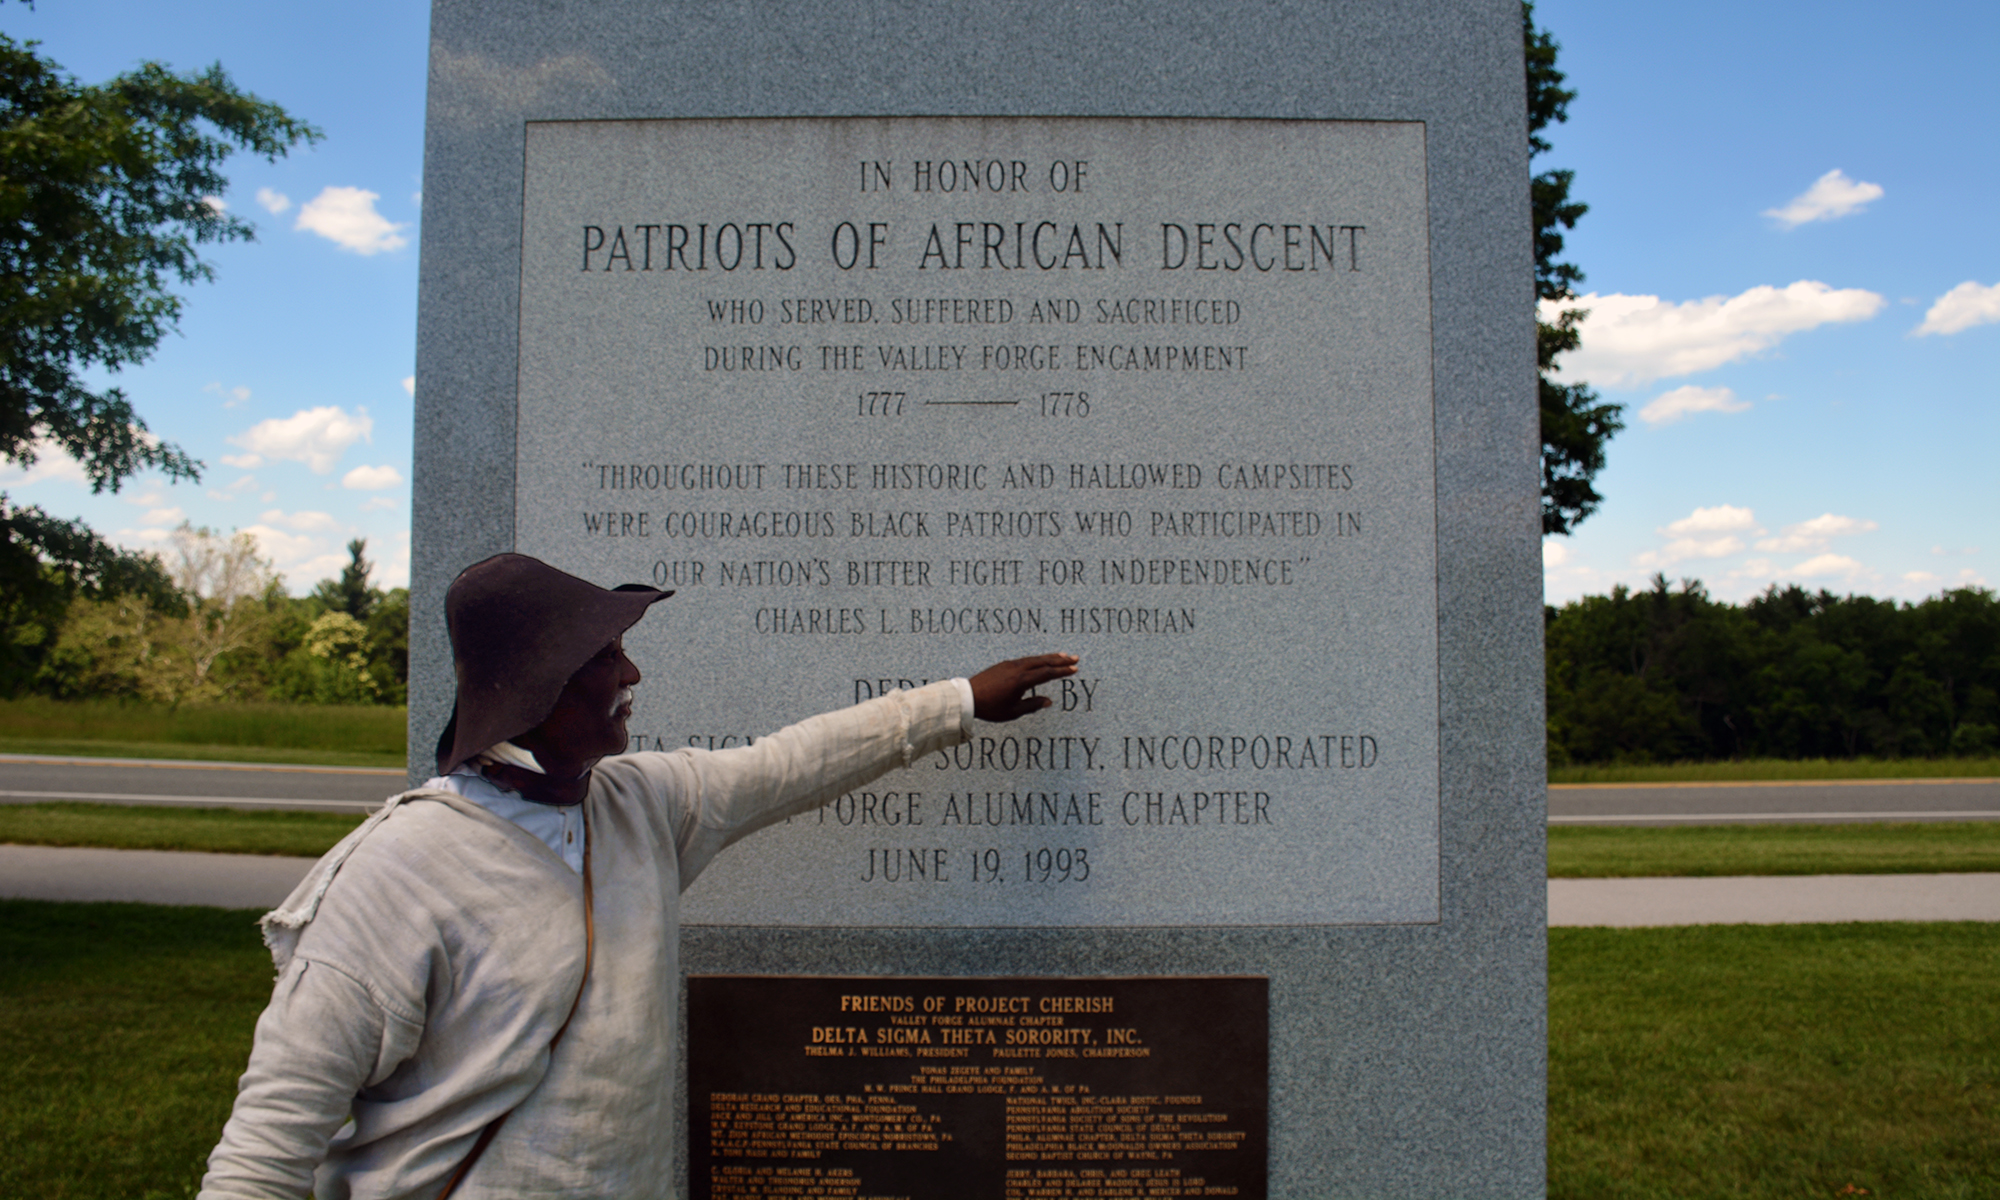 Patriots of African Descent Monument